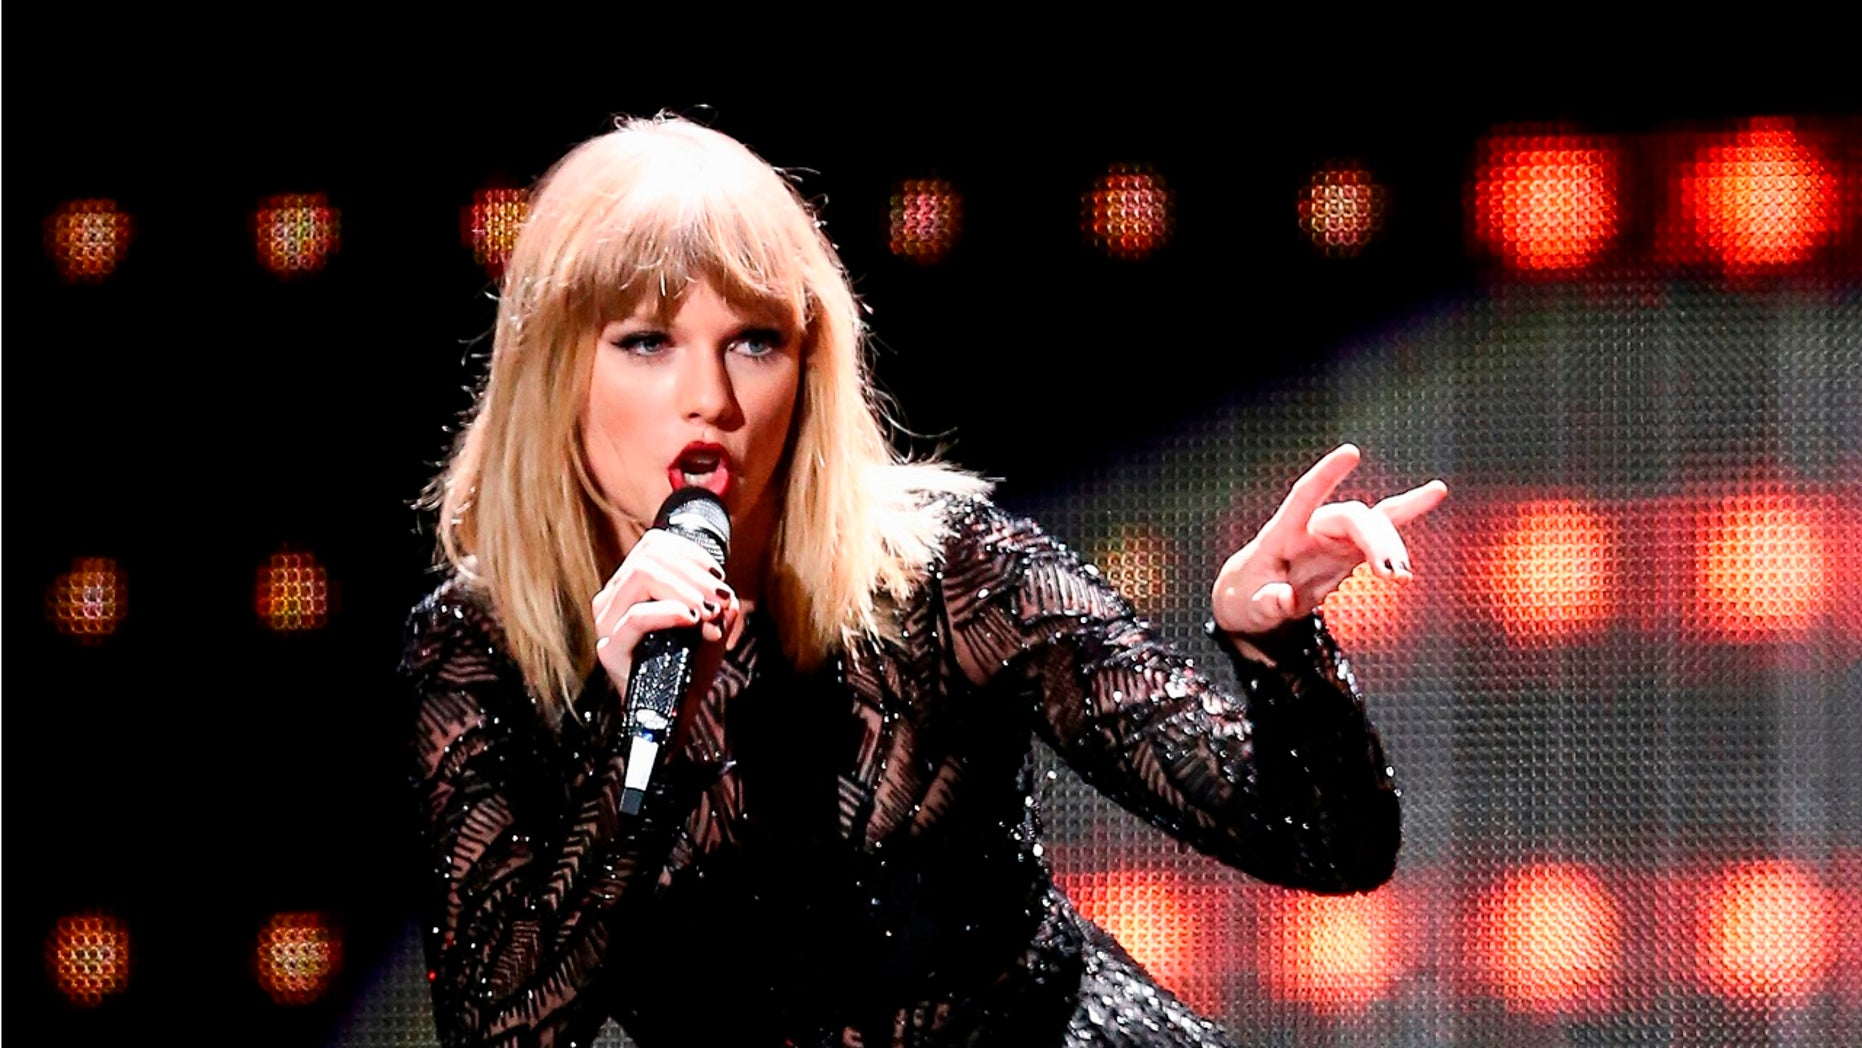 Taylor Swift hasn't been home for any of the recent alleged stalking incidents at her homes in California and New York, authorities say.